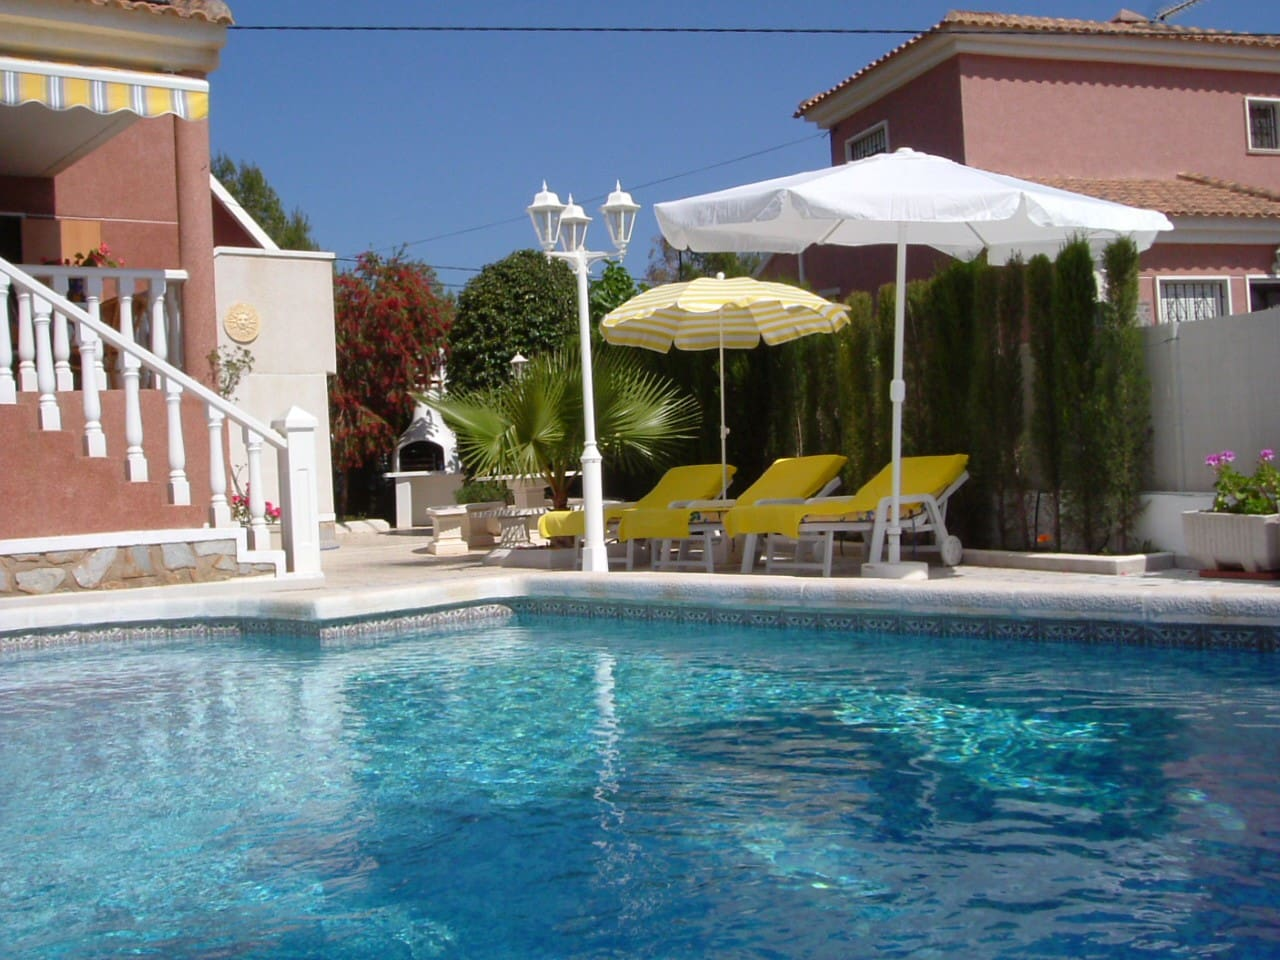 Pool area. The pool is exclusive for the house. 6*4 m